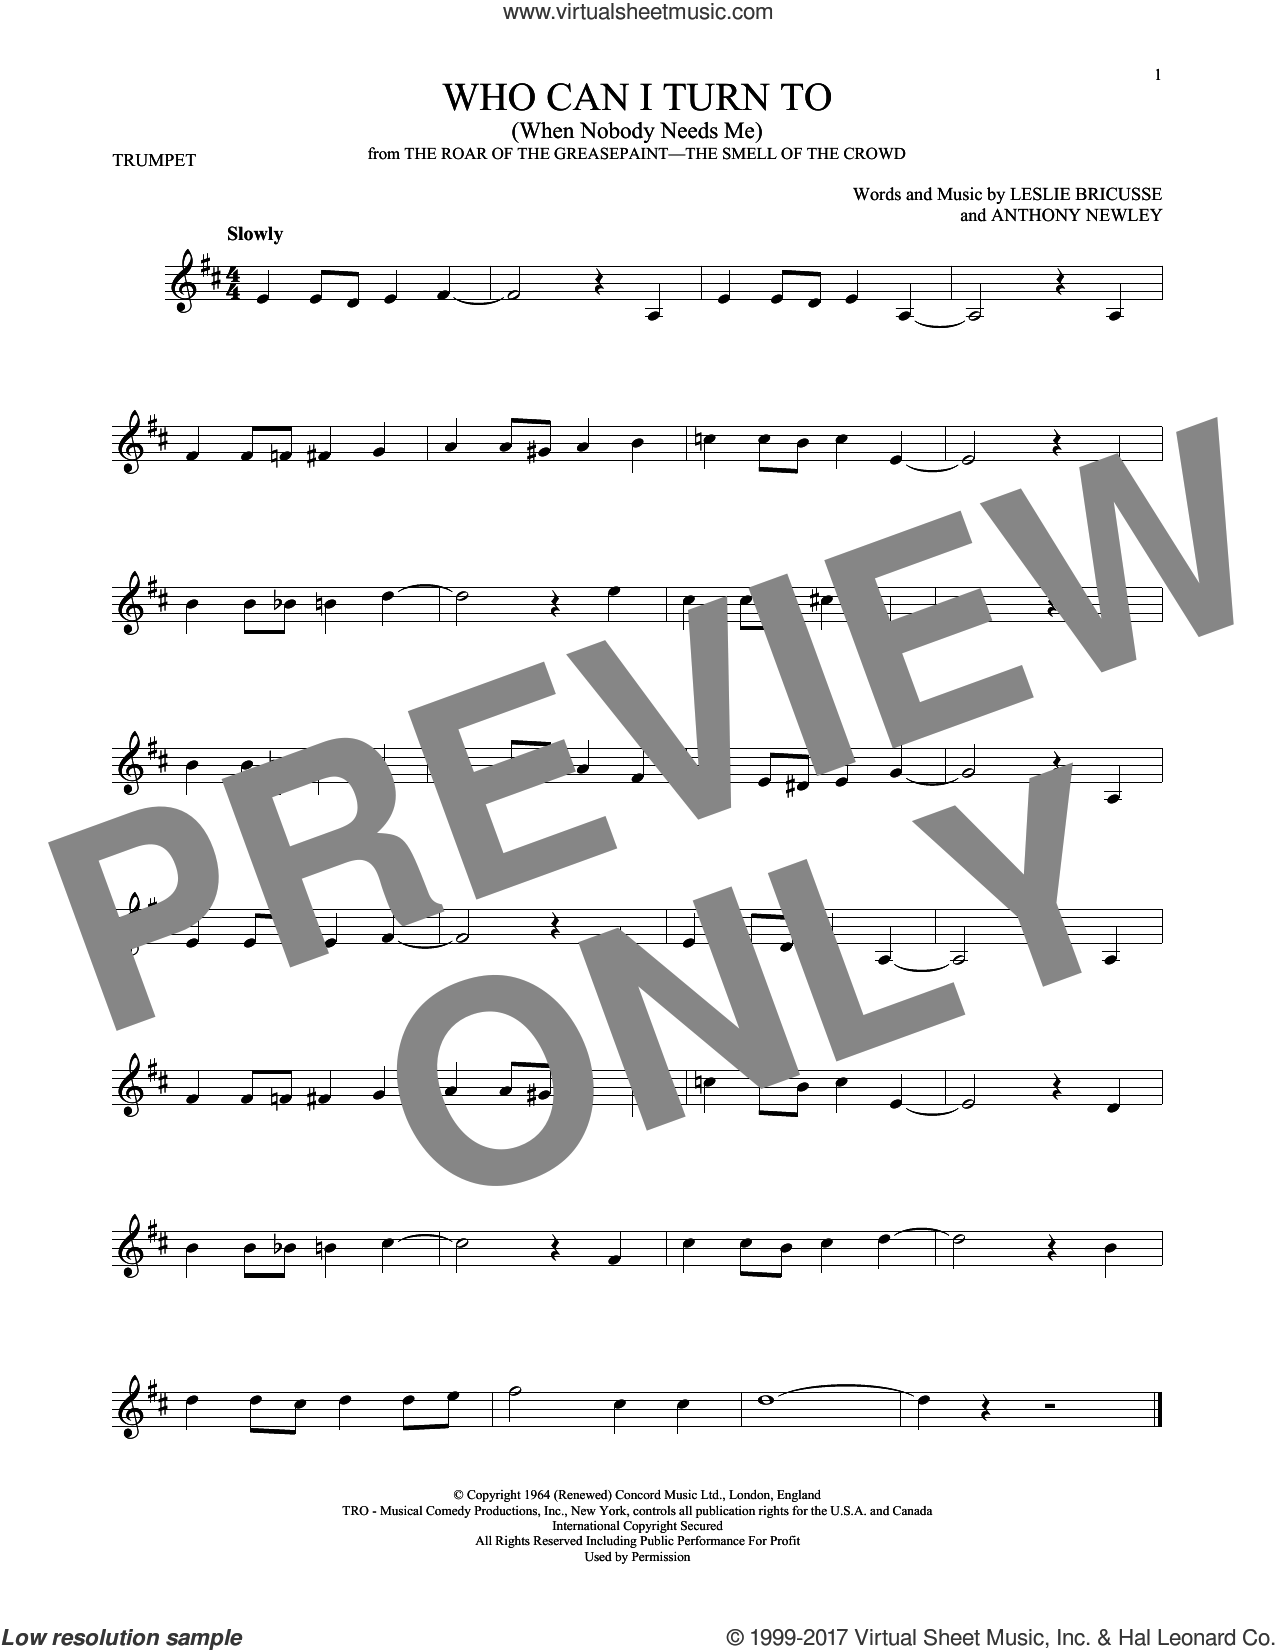 Who Can I Turn To (When Nobody Needs Me) sheet music for trumpet solo by Leslie Bricusse and Anthony Newley, intermediate skill level